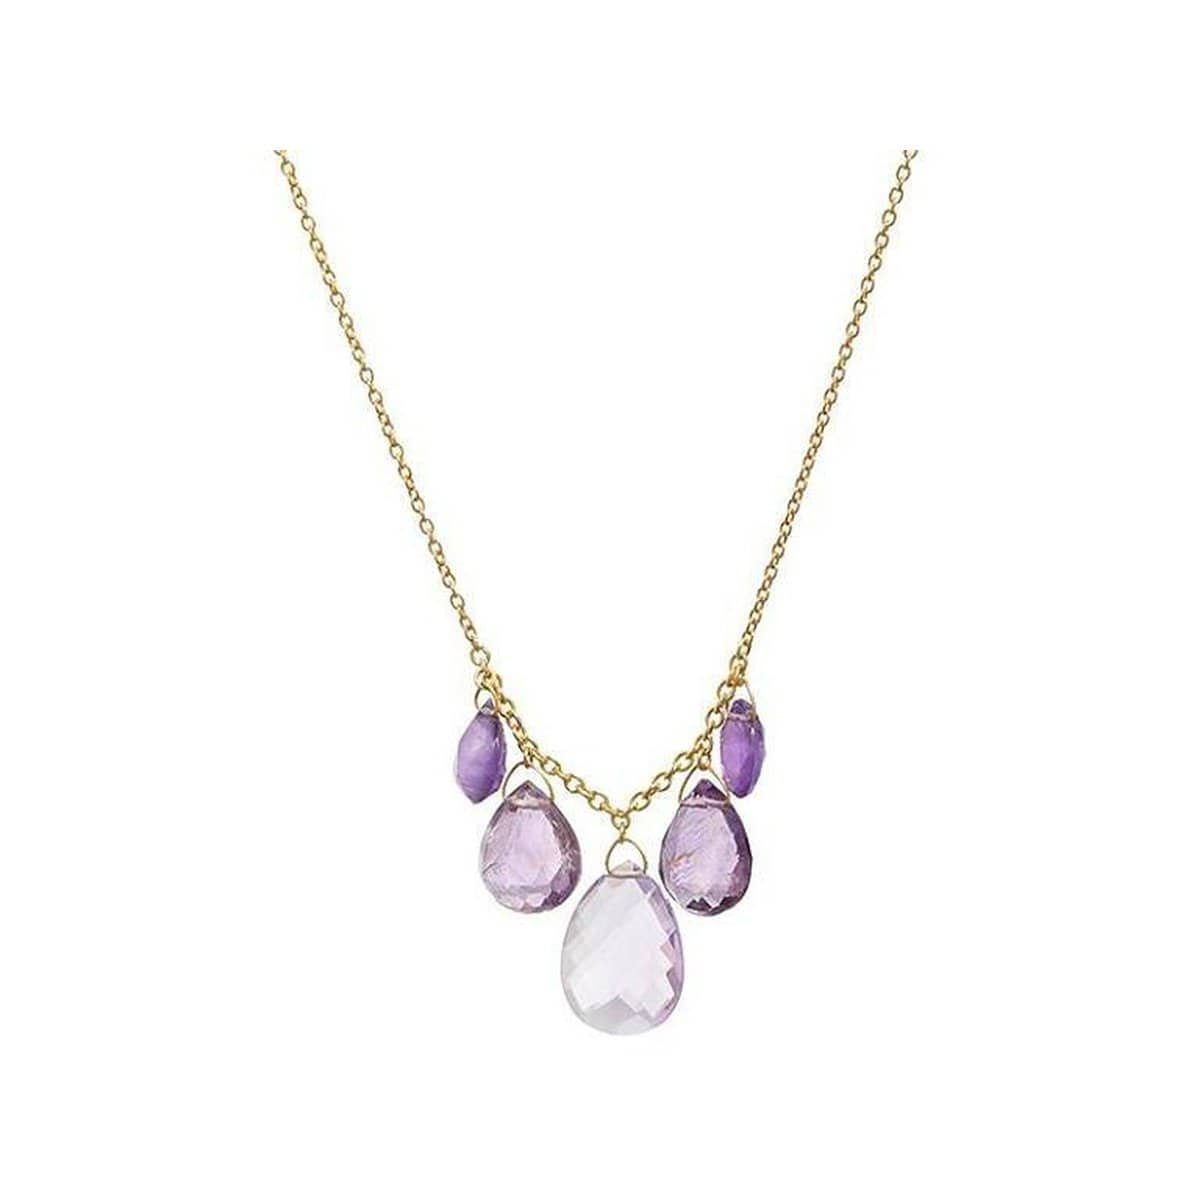 Delicate Hue 22K Gold Amethyst Necklace - N-U24991-AM-GURHAN-Renee Taylor Gallery